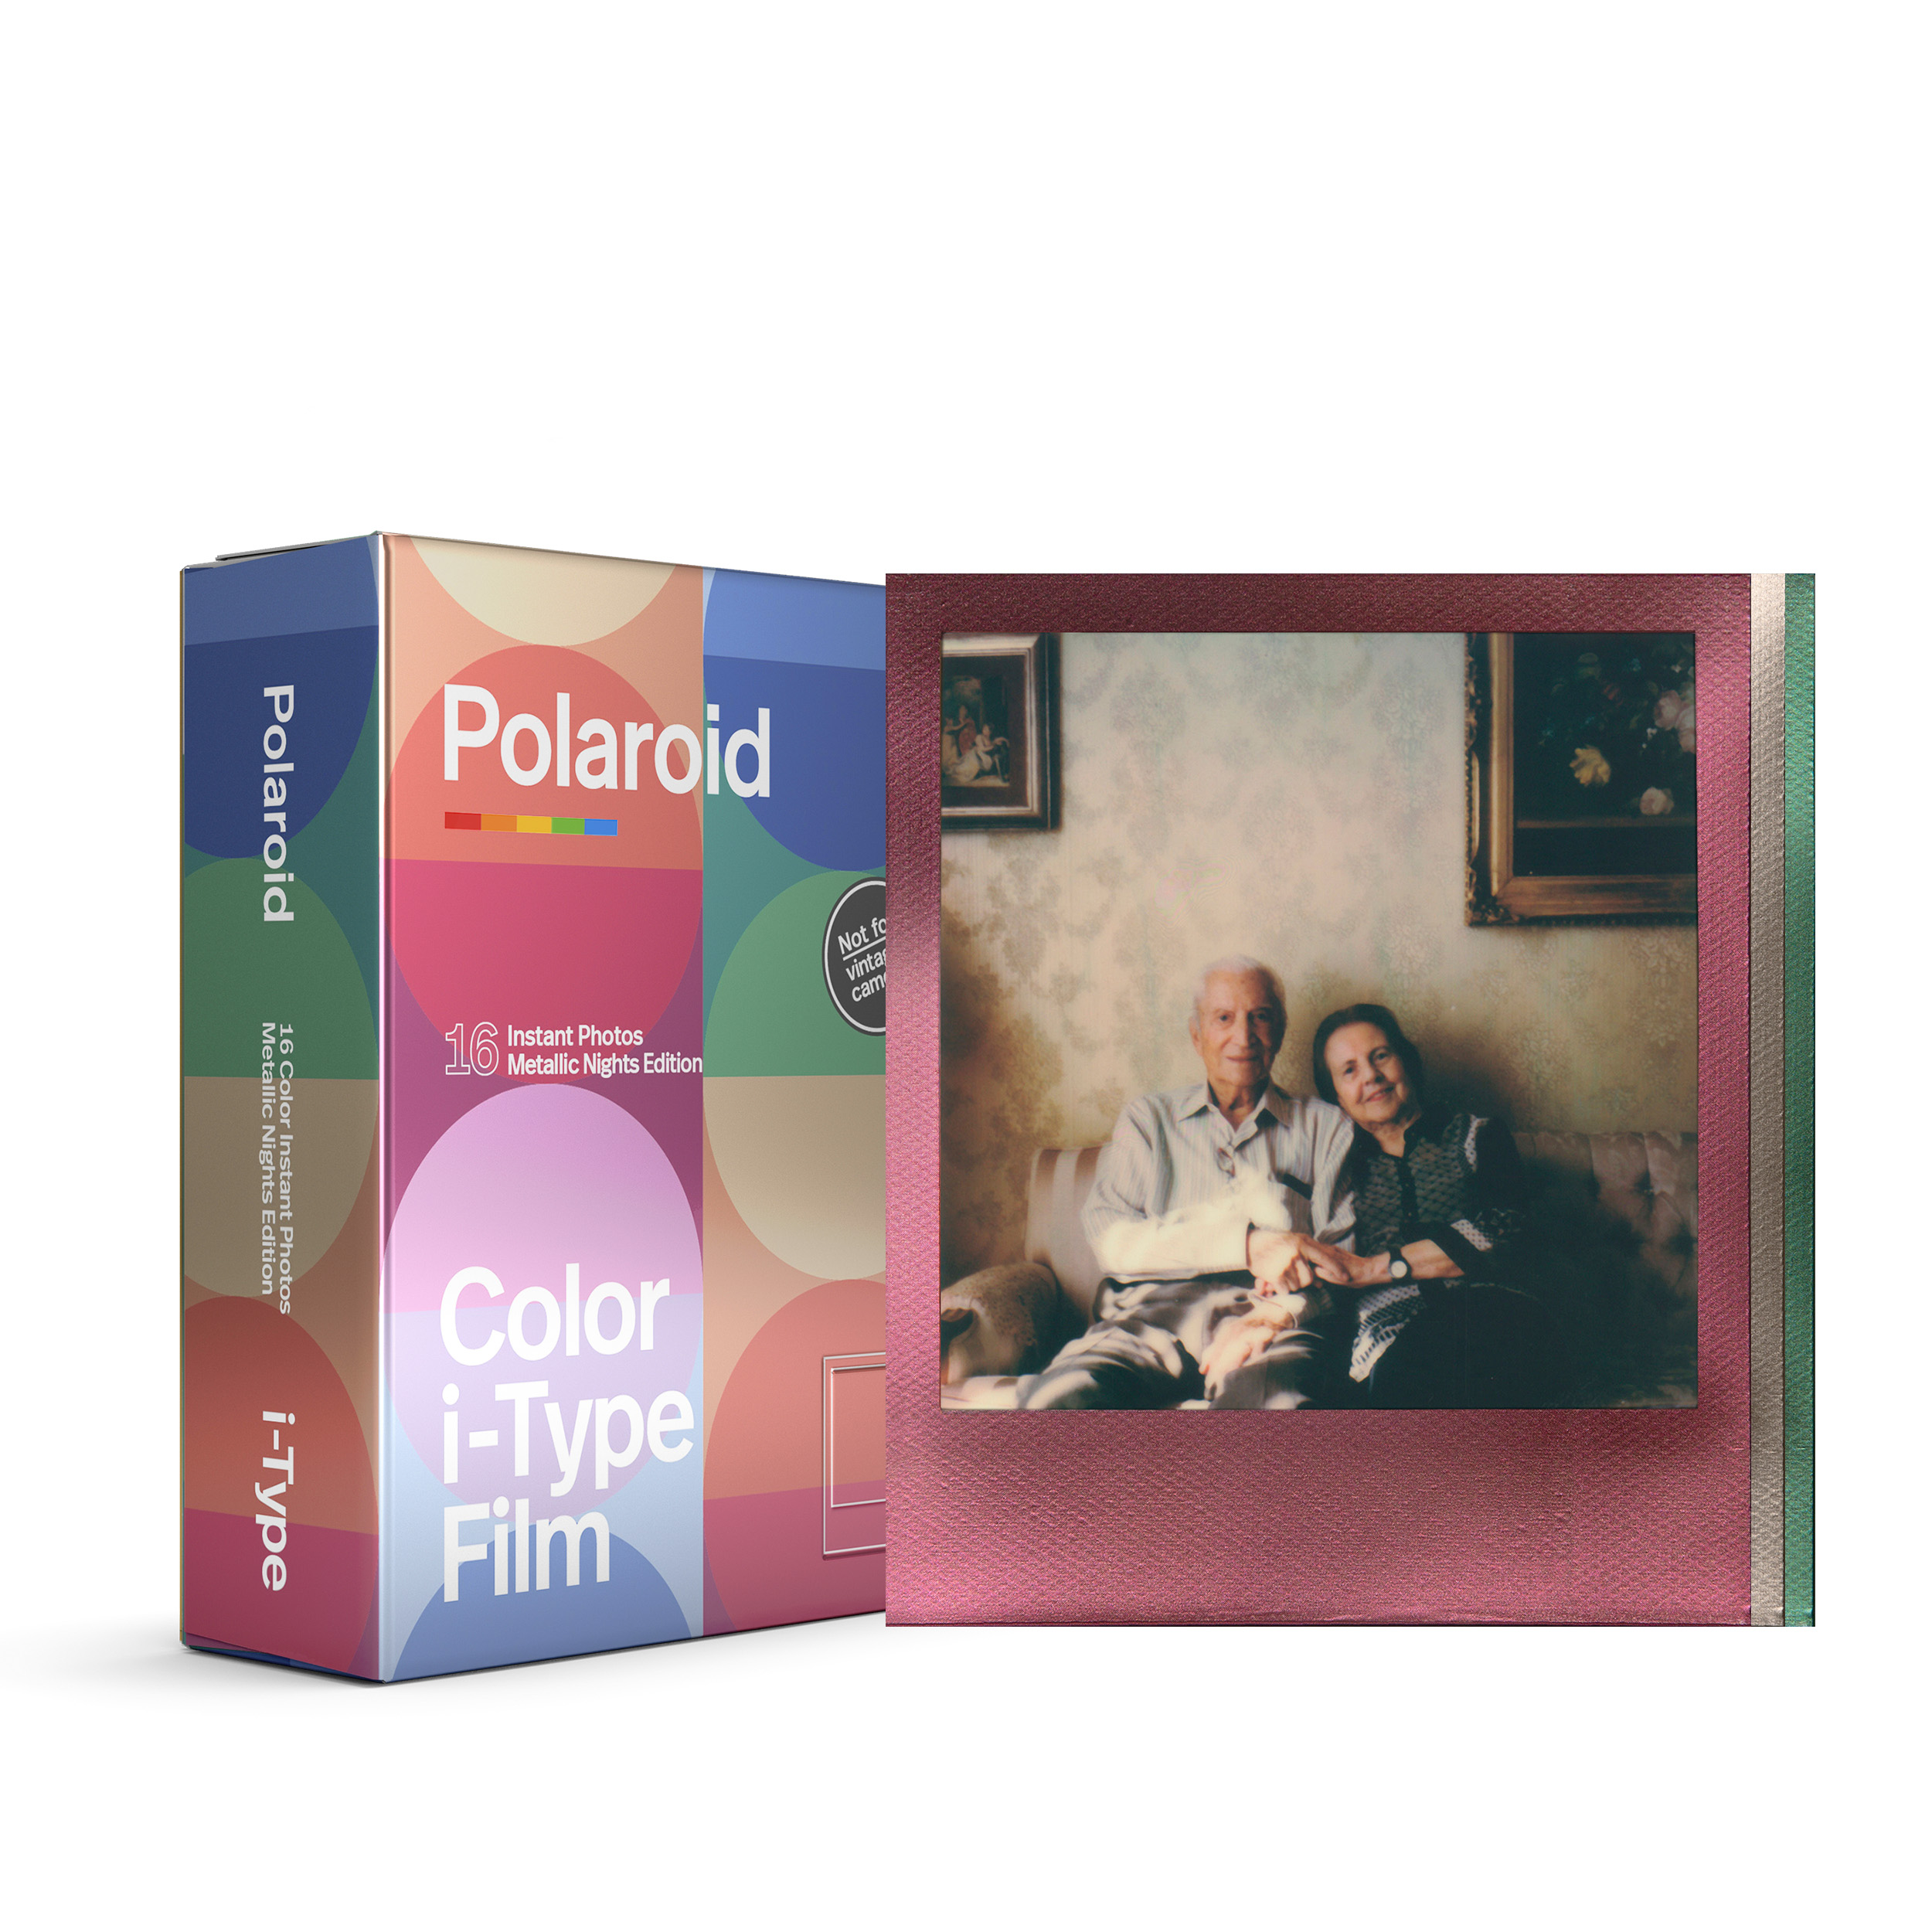 Color i-Type Film - Metallic Nights (Double Pack)